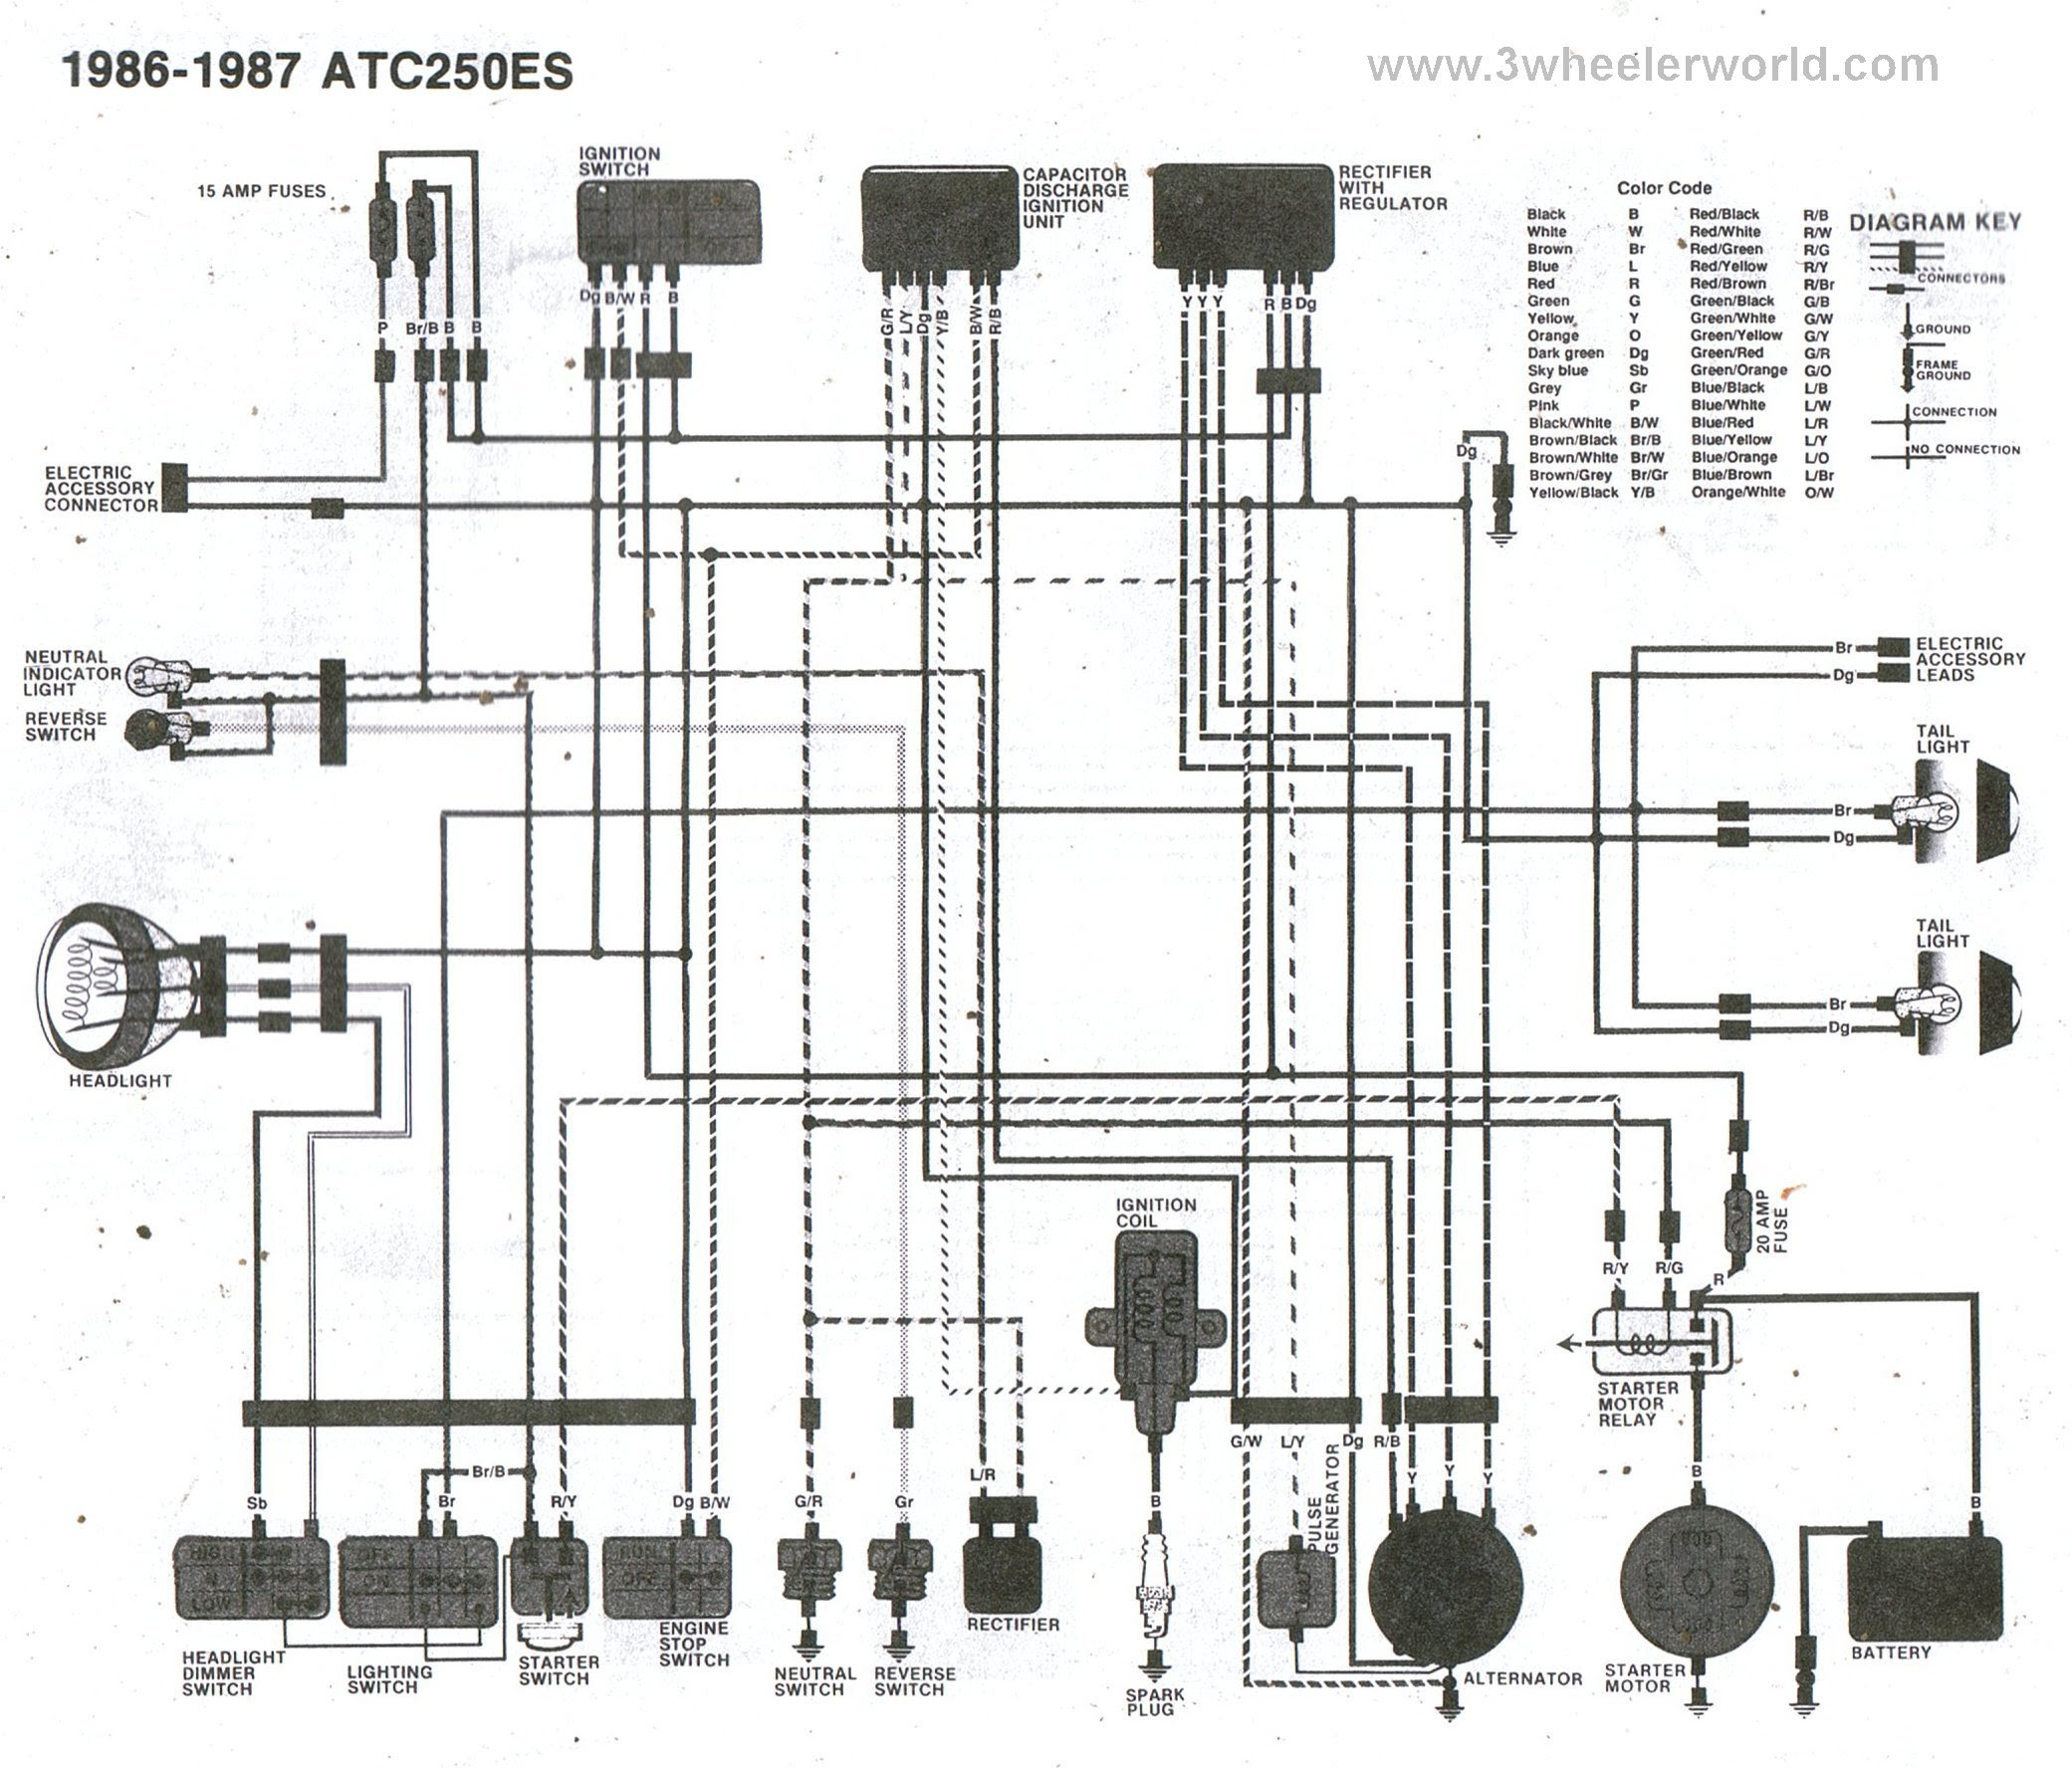 Honda 200x Wiring Diagram – Wiring on harley-davidson exhaust diagram, harley-davidson wiring diagrams online, columbia par car wiring diagram, harley-davidson softail rocker, harley-davidson carburetor diagram, harley-davidson motorcycle diagrams, harley-davidson starter diagram, harley-davidson electrical diagram, harley-davidson clutch diagram, john deere ignition switch diagram, harley wiring harness diagram, harley sportster wiring diagram, simple harley wiring diagram, harley-davidson transmission diagram, circuit breaker wiring diagram, harley-davidson motor diagram, sportster chopper wiring diagram, harley-davidson shovelhead wiring-diagram, harley-davidson charging system diagram, harley-davidson engine diagram,